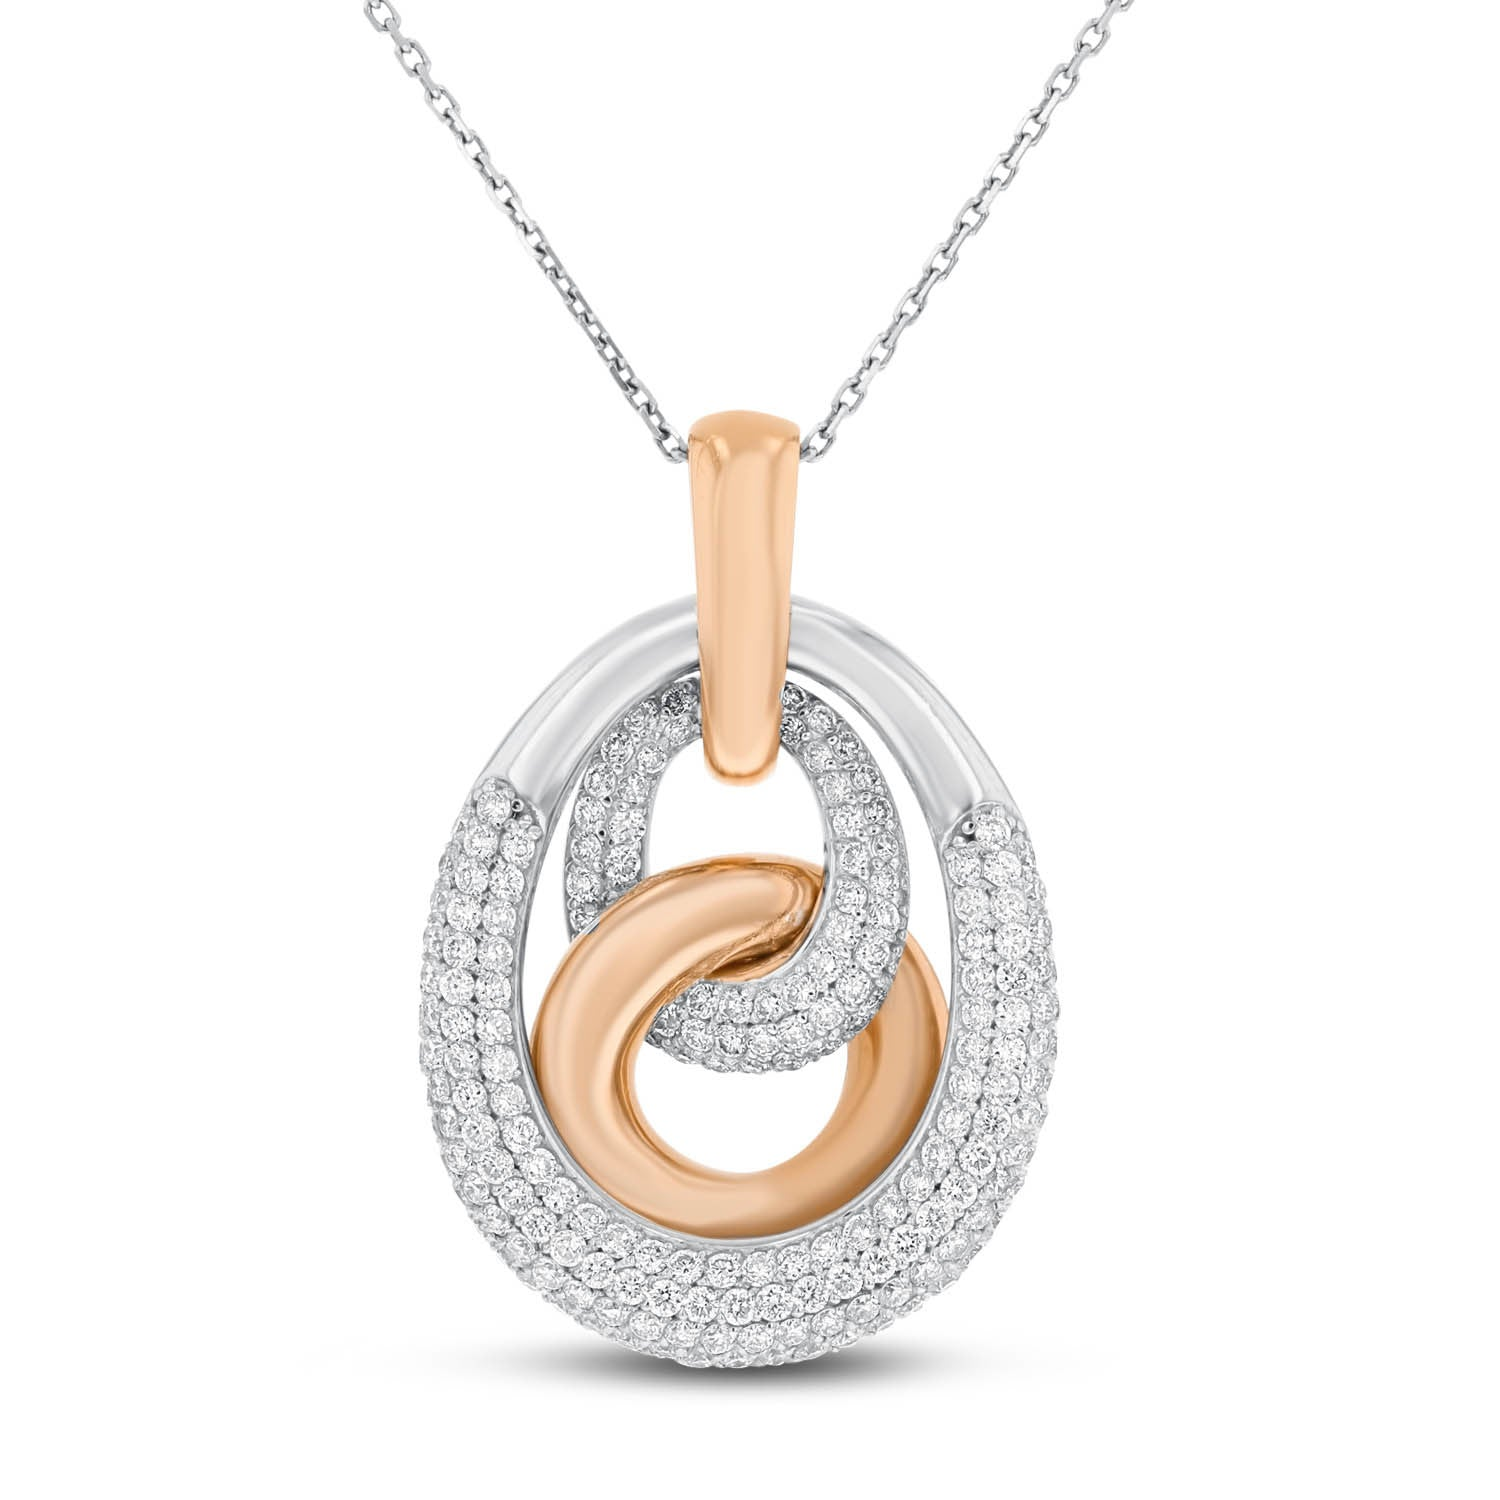 14K WHITE GOLD AND ROSE GOLD Diamond Pendant, 2.21 Carats